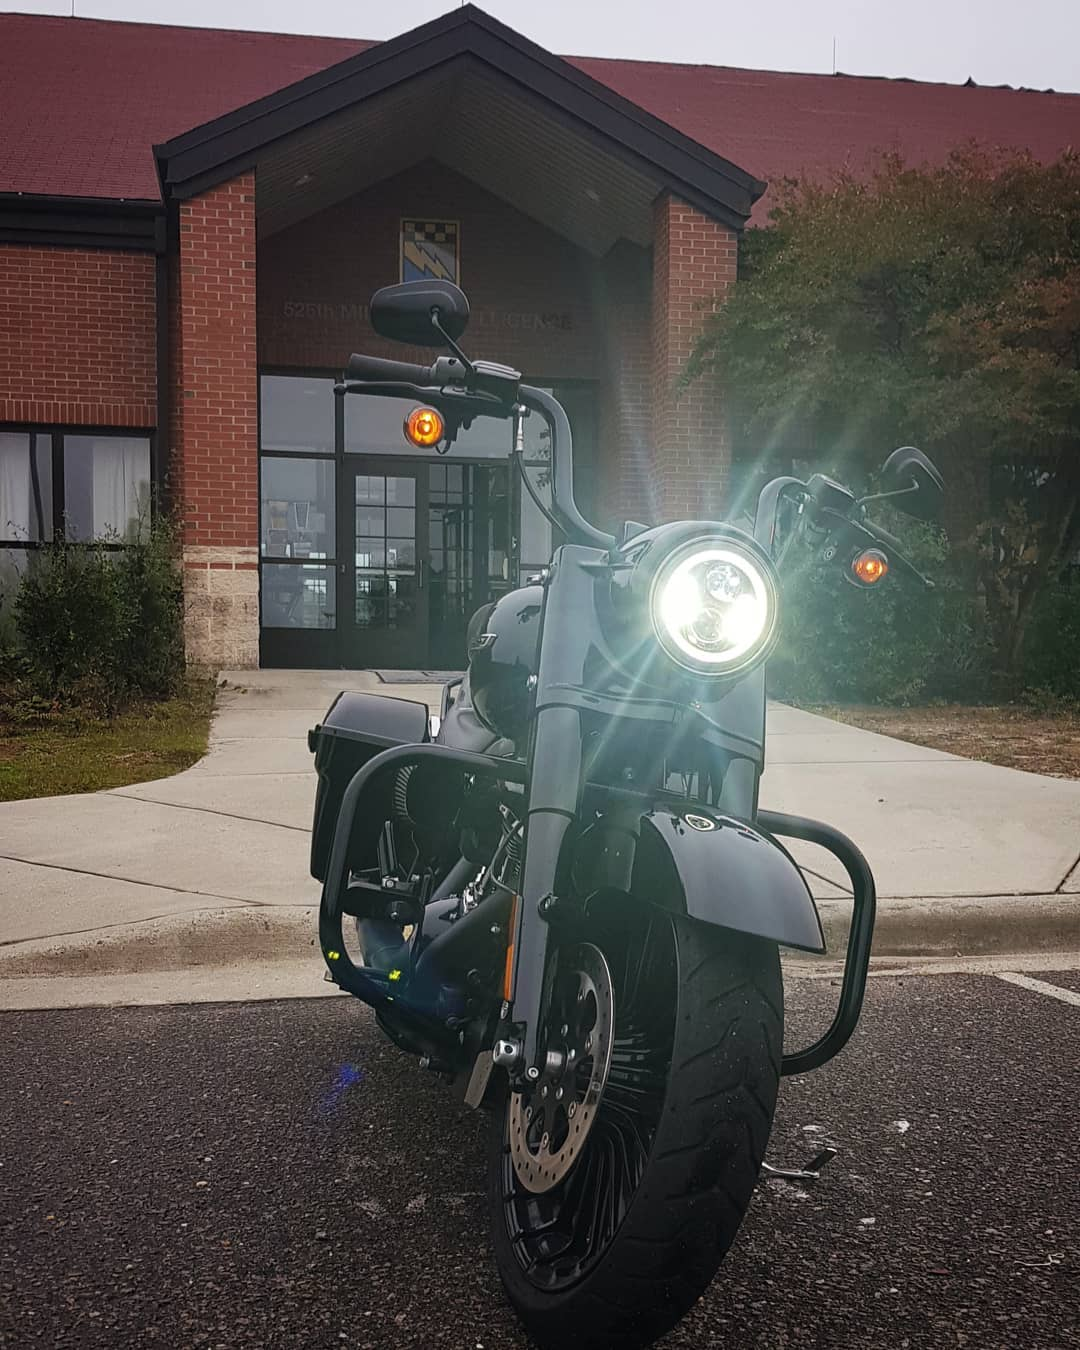 7 Led Black Halomaker Headlight Harley Daymaker Replacement Wiring Harness Diagram 95 Flhr Lighting Up Cloudy Skies On A Gloomy And Cold Work Weekend With The Hogworkz